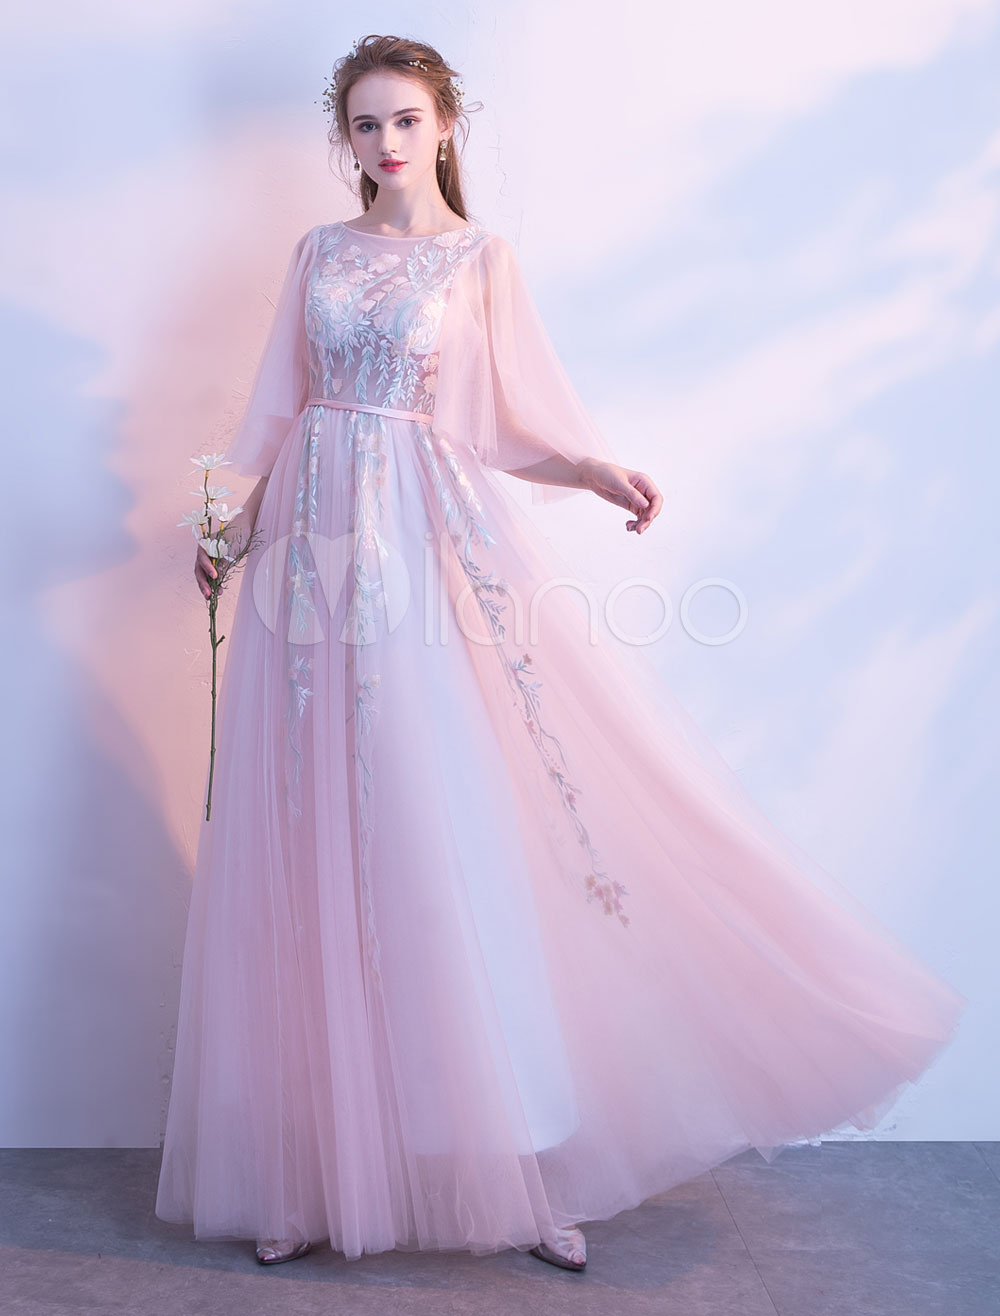 Prom Dresses Soft Pink Long Tulle Lace Half Sleeve Bateau A Line Floor Length Occasion Party Dress